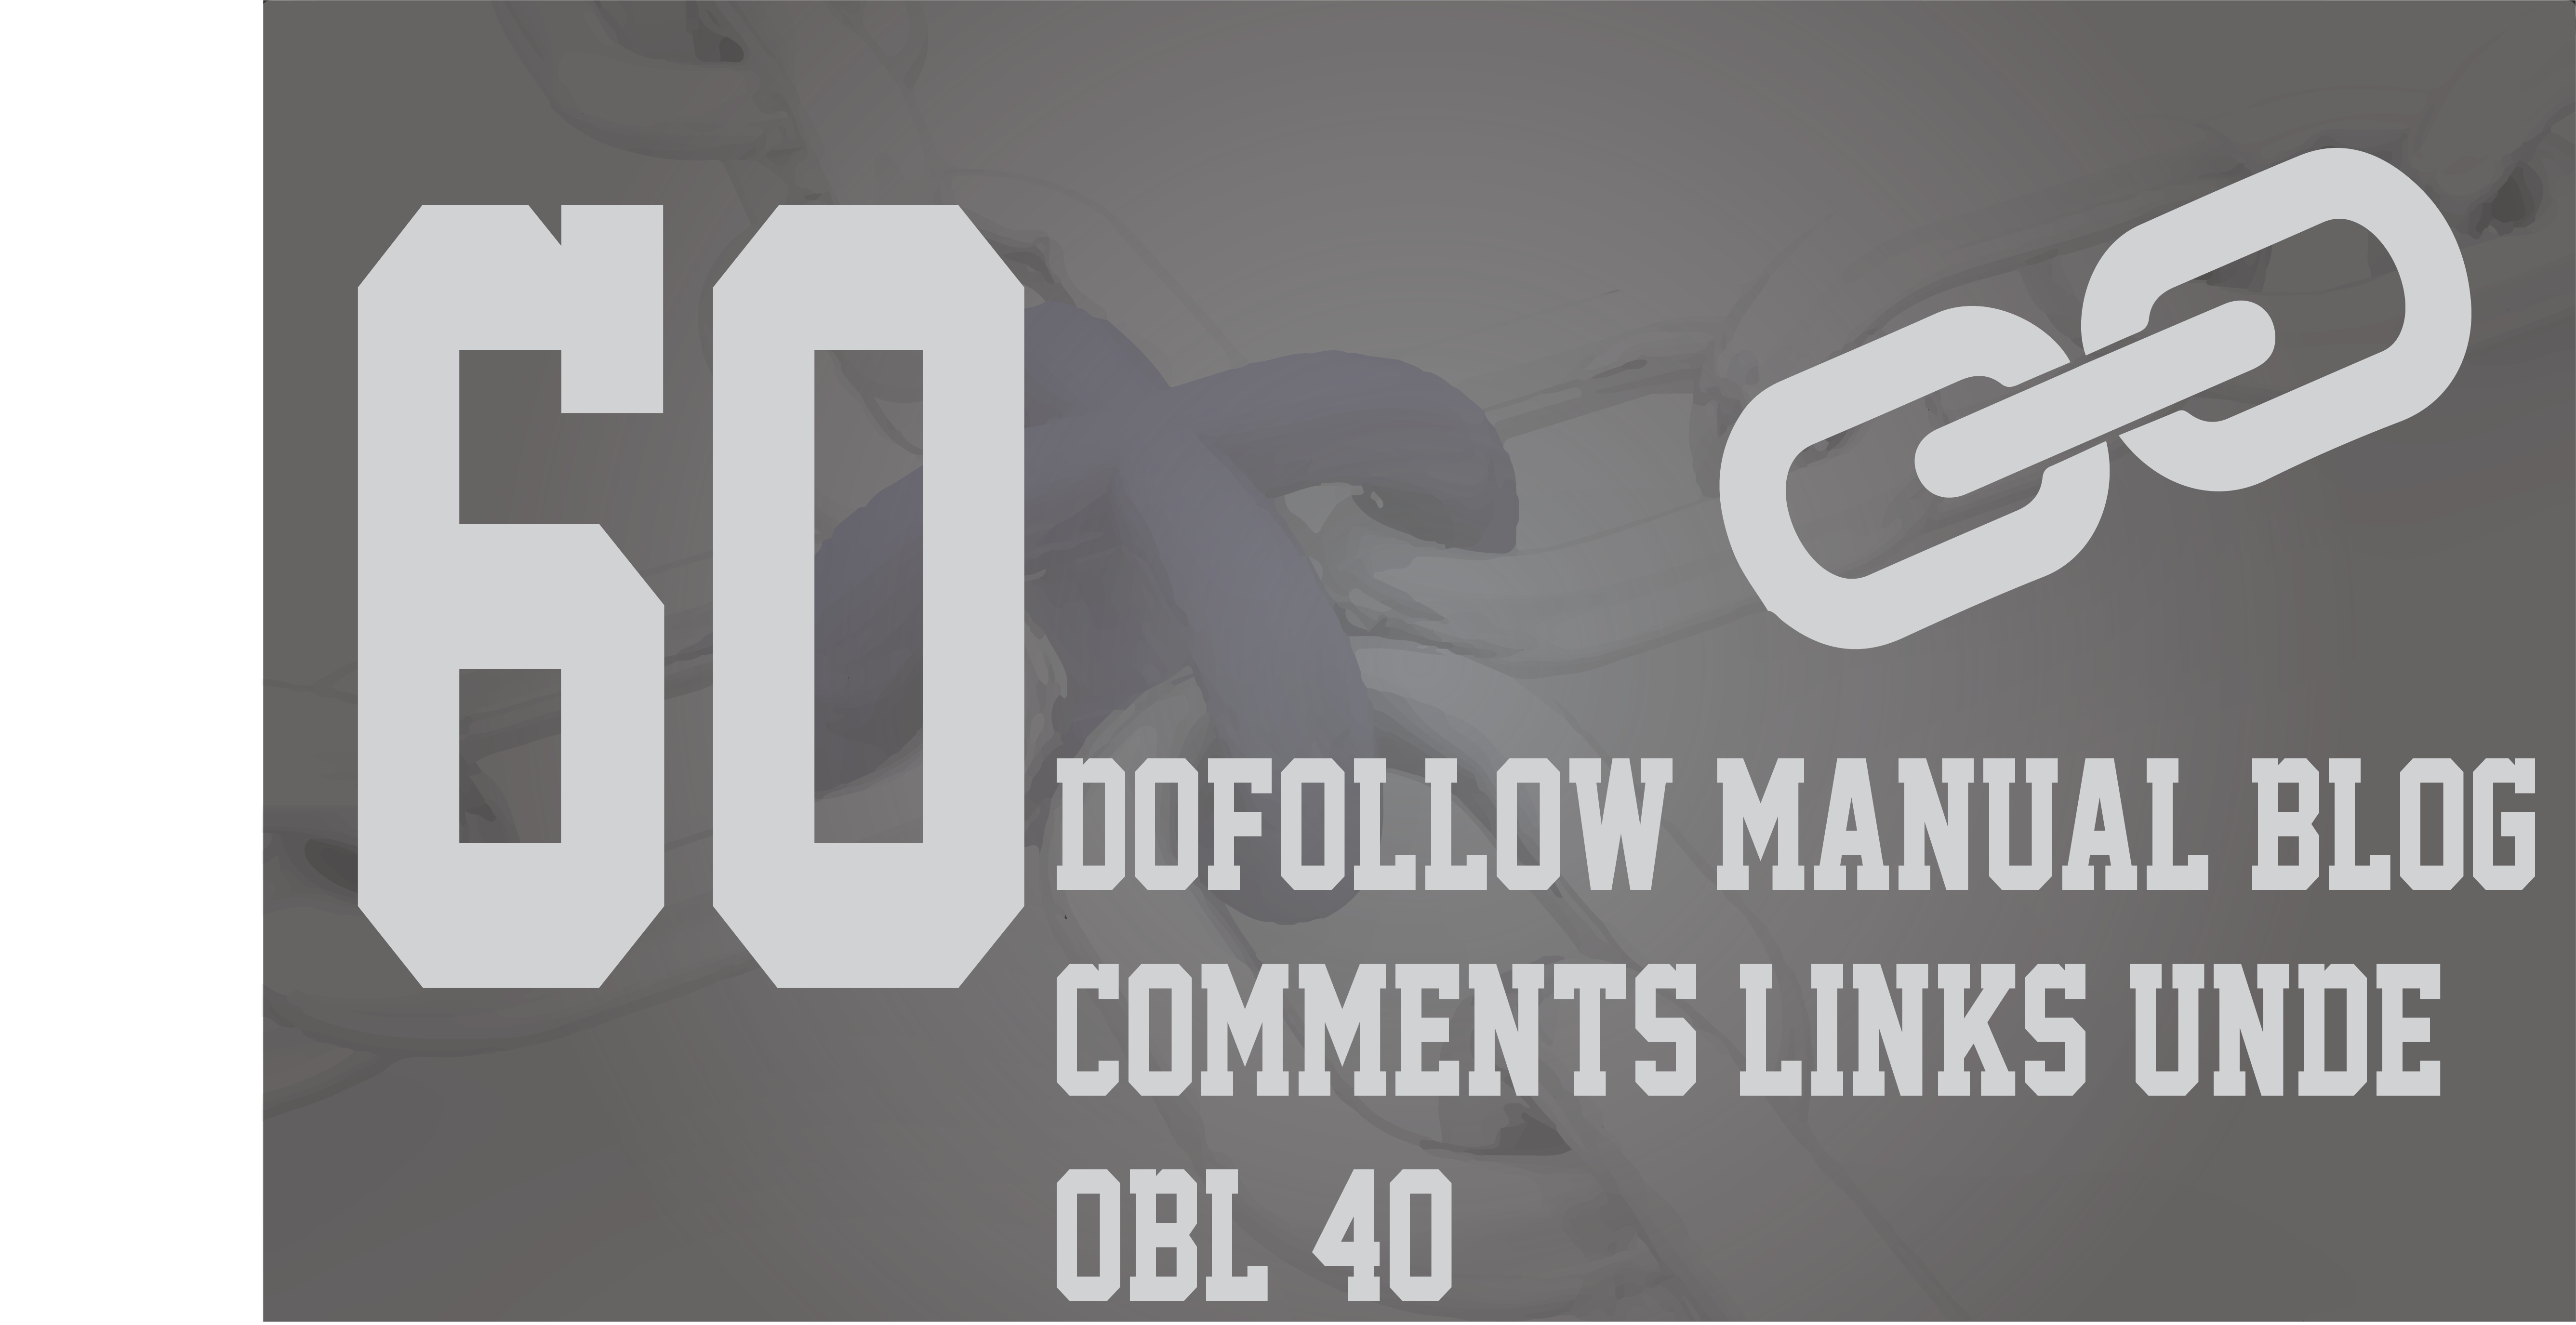 Give 60 Dofollow Manual Blog Comments Links Under Obl 40